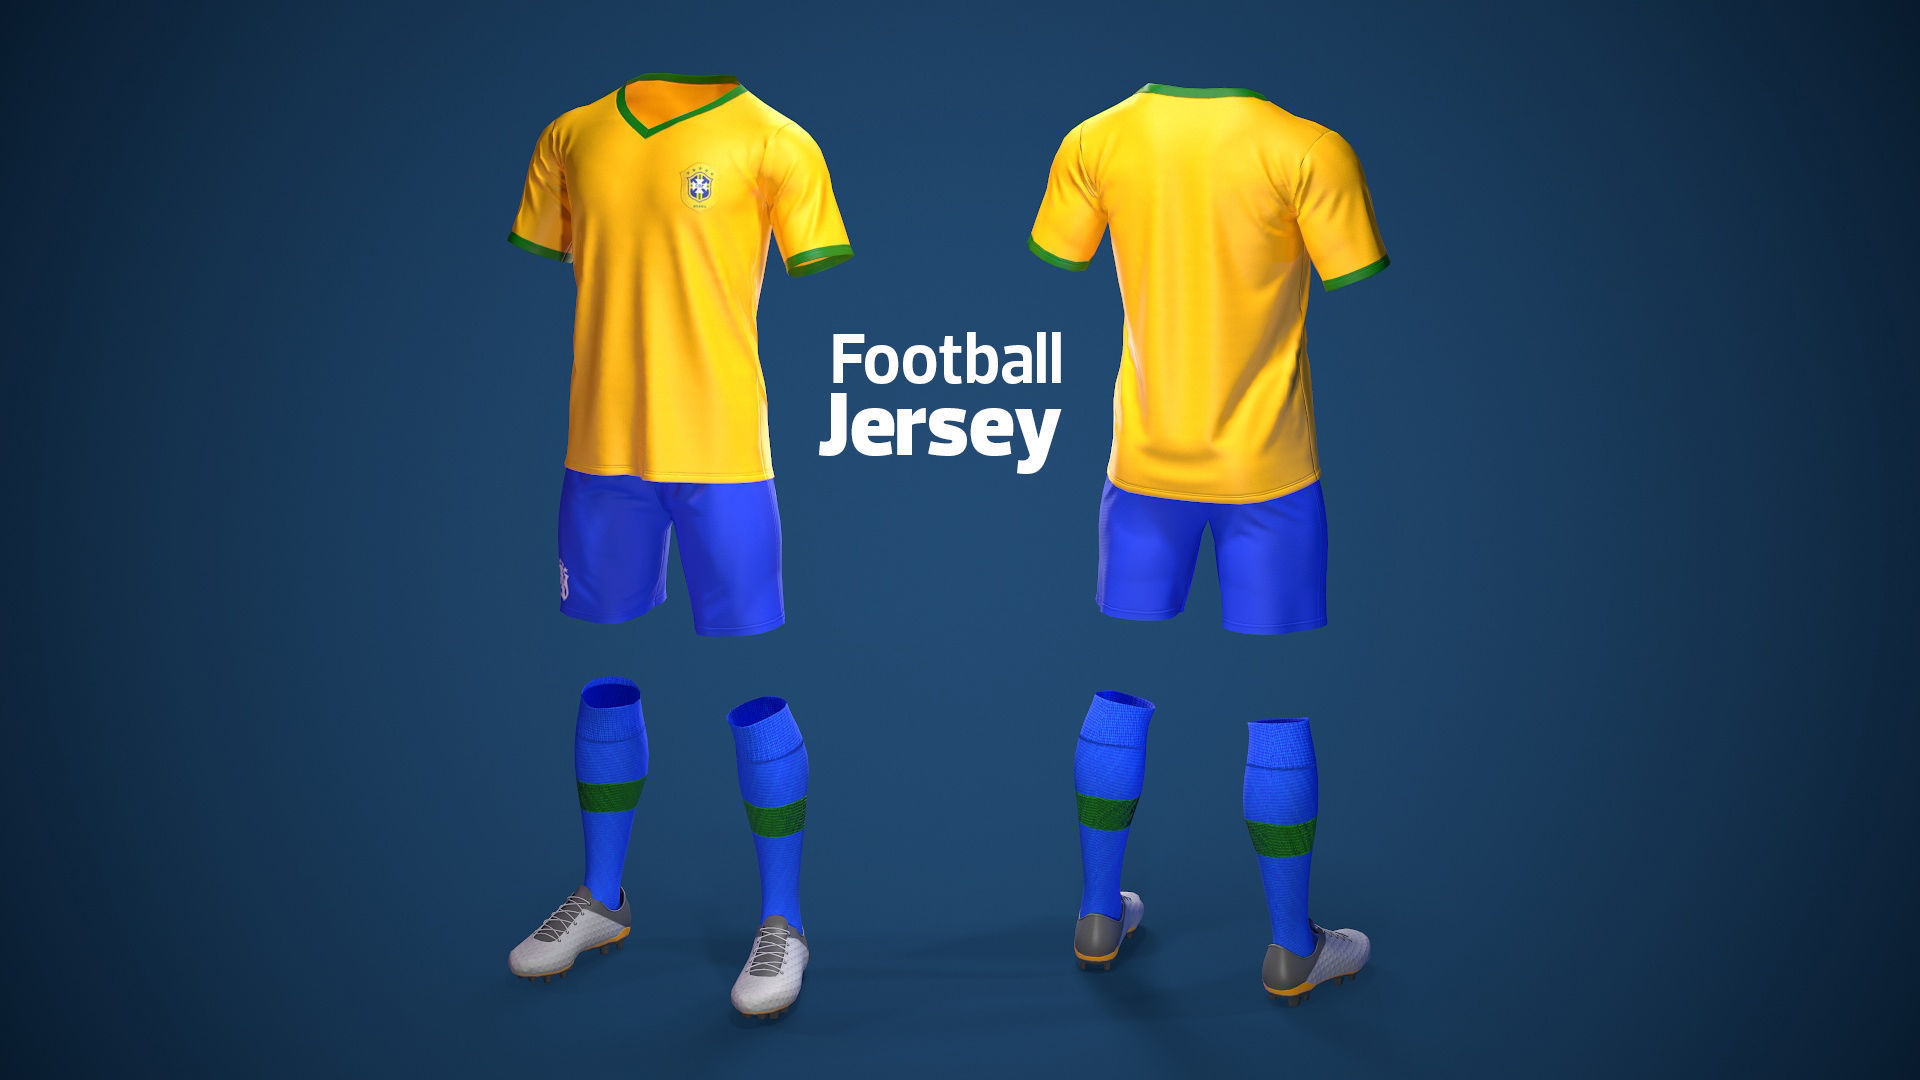 Football Jersey full outfit Brazil Team Sports